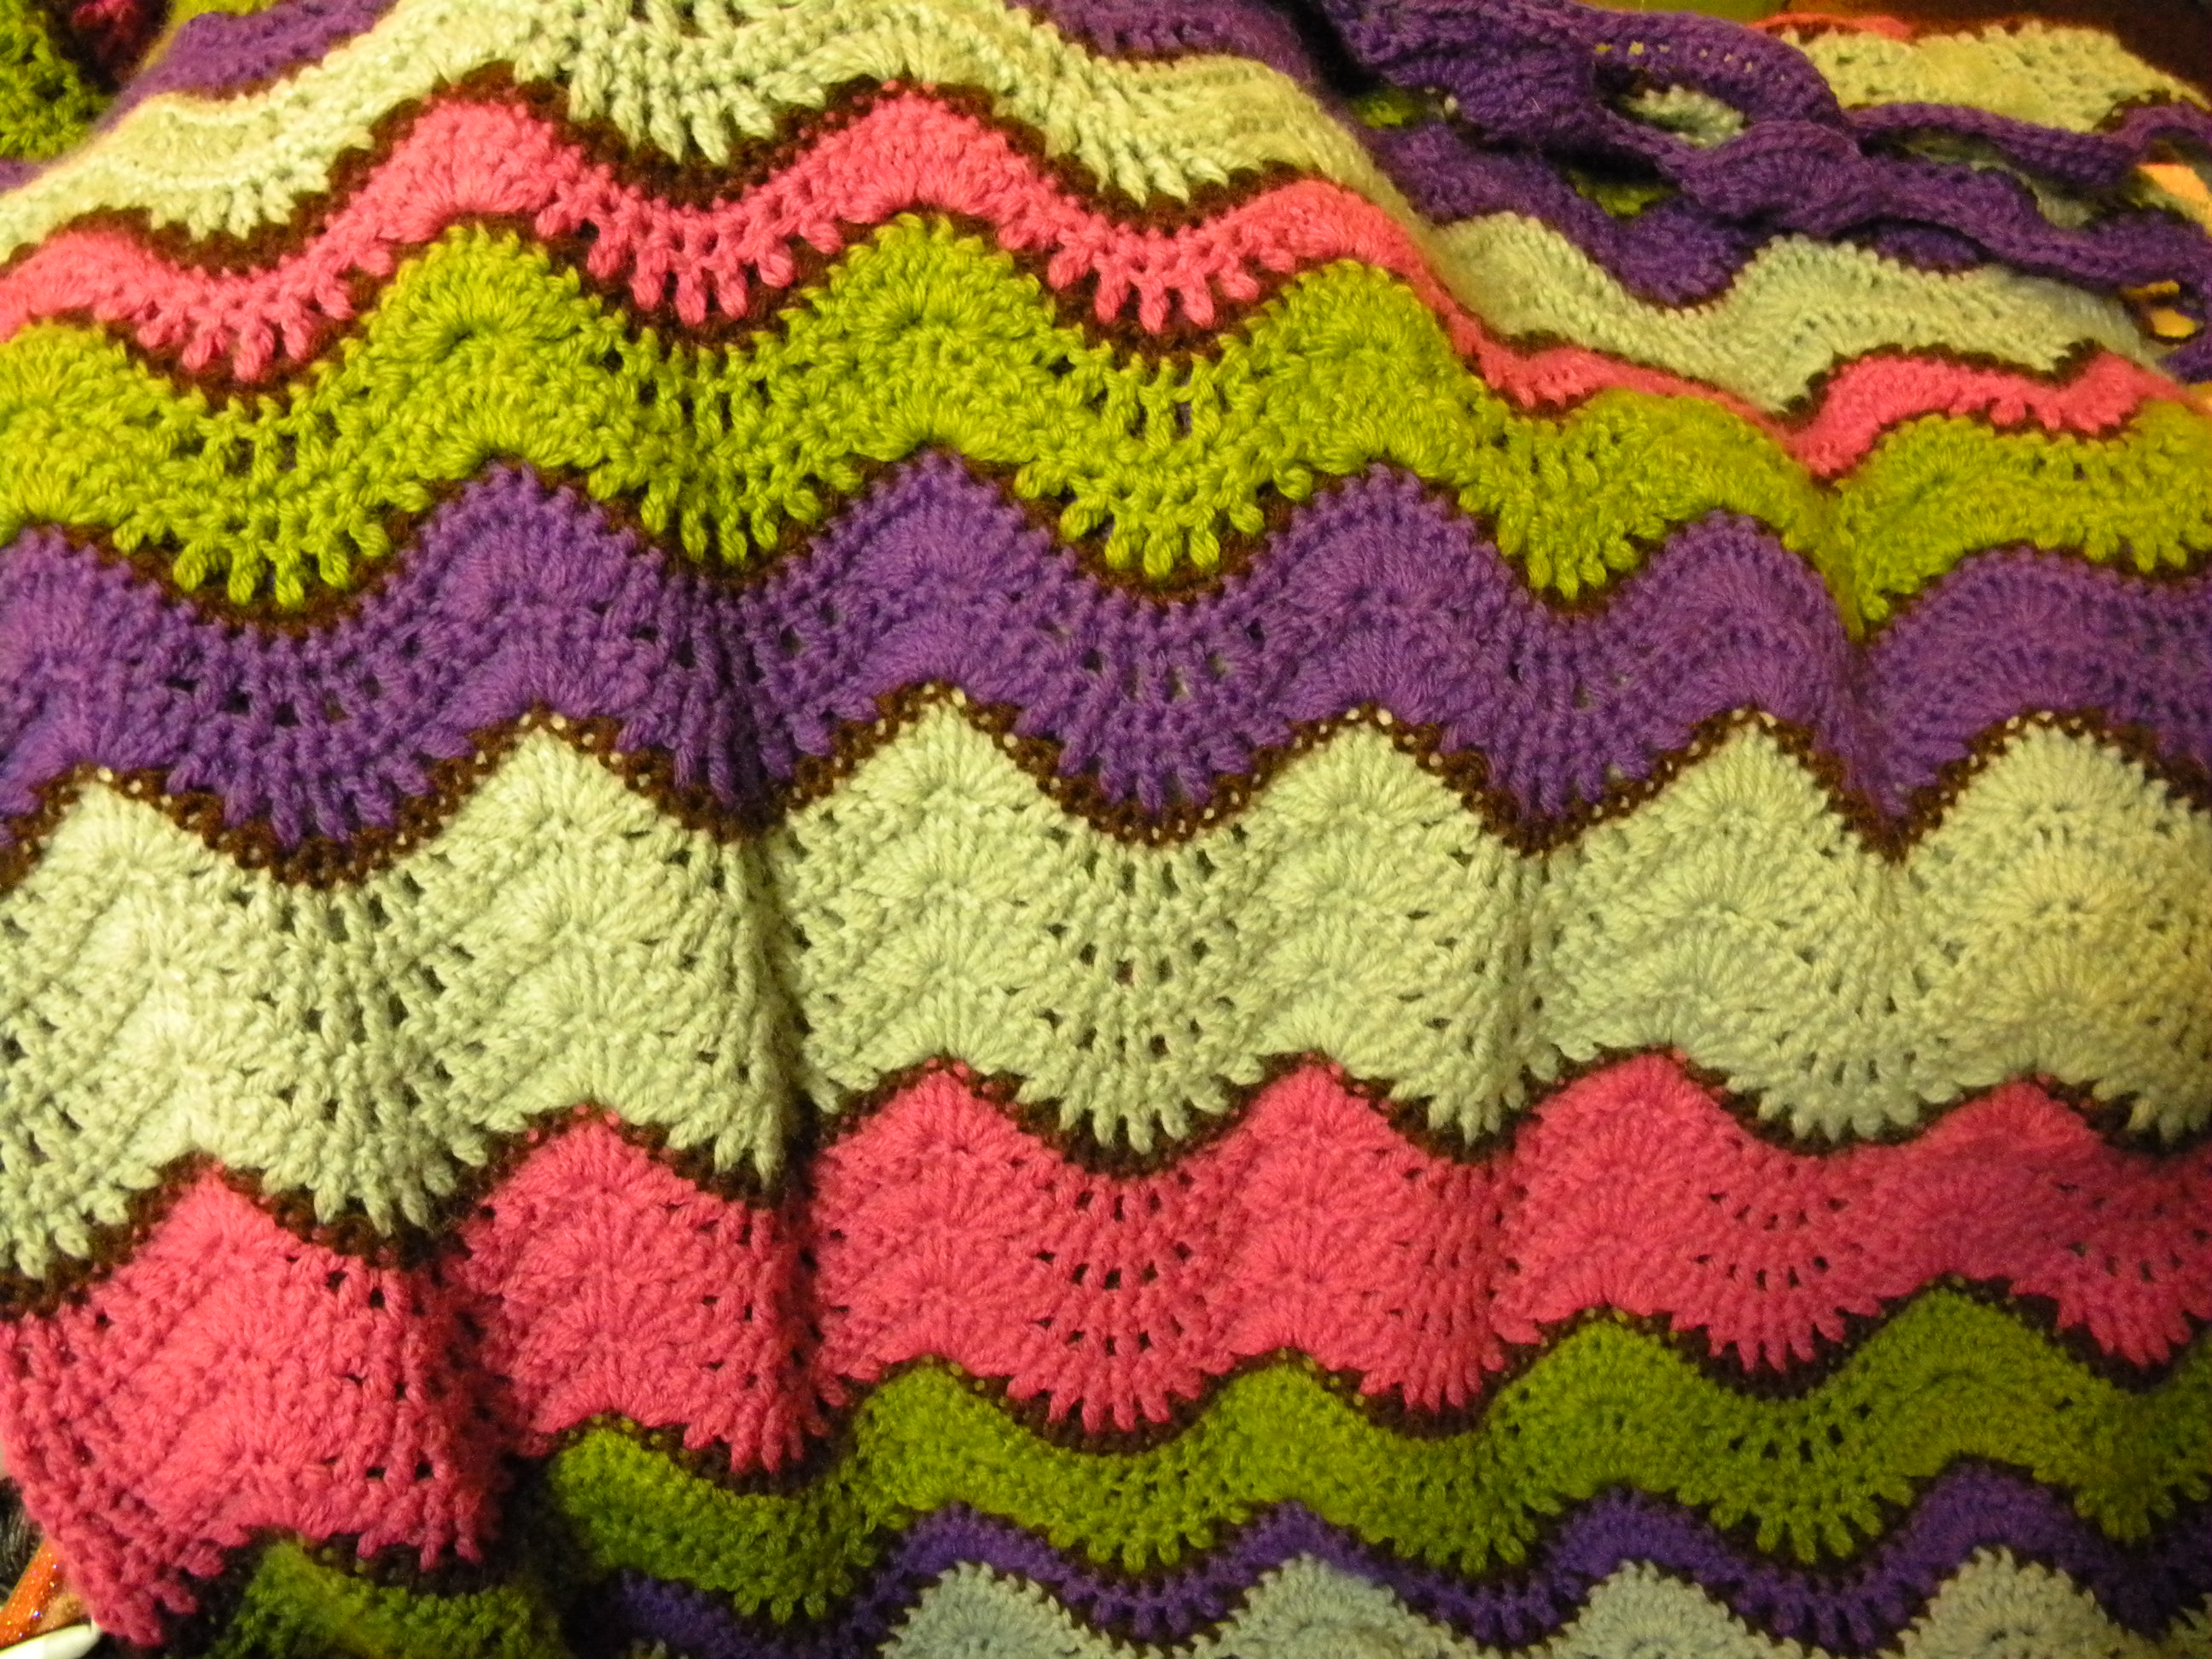 Crochet Stitches Ripple Afghan : Ripple Afghan